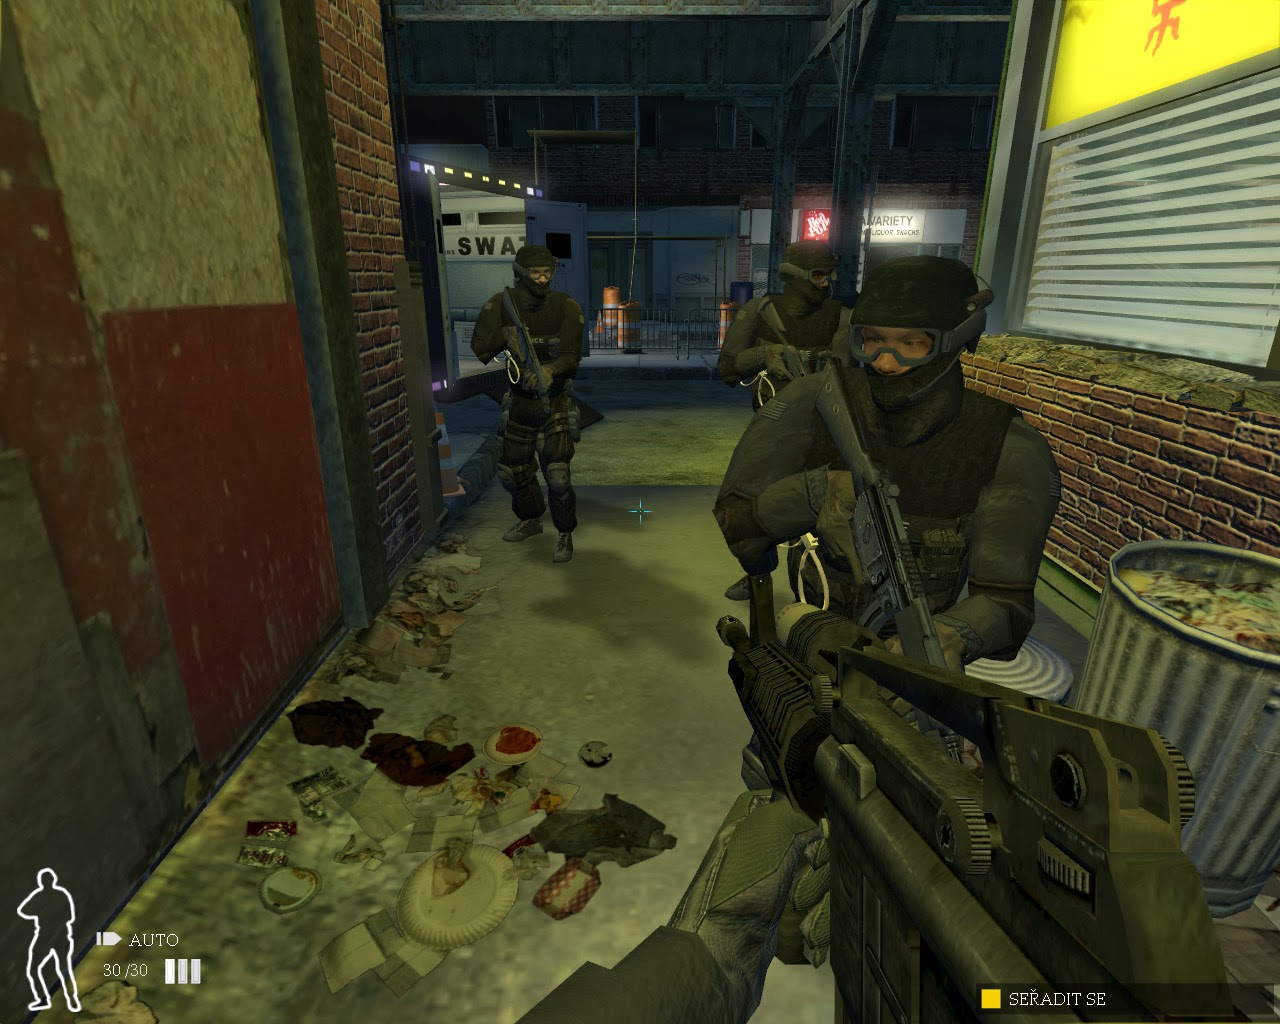 Get full swat 4 gold game download & play it now!